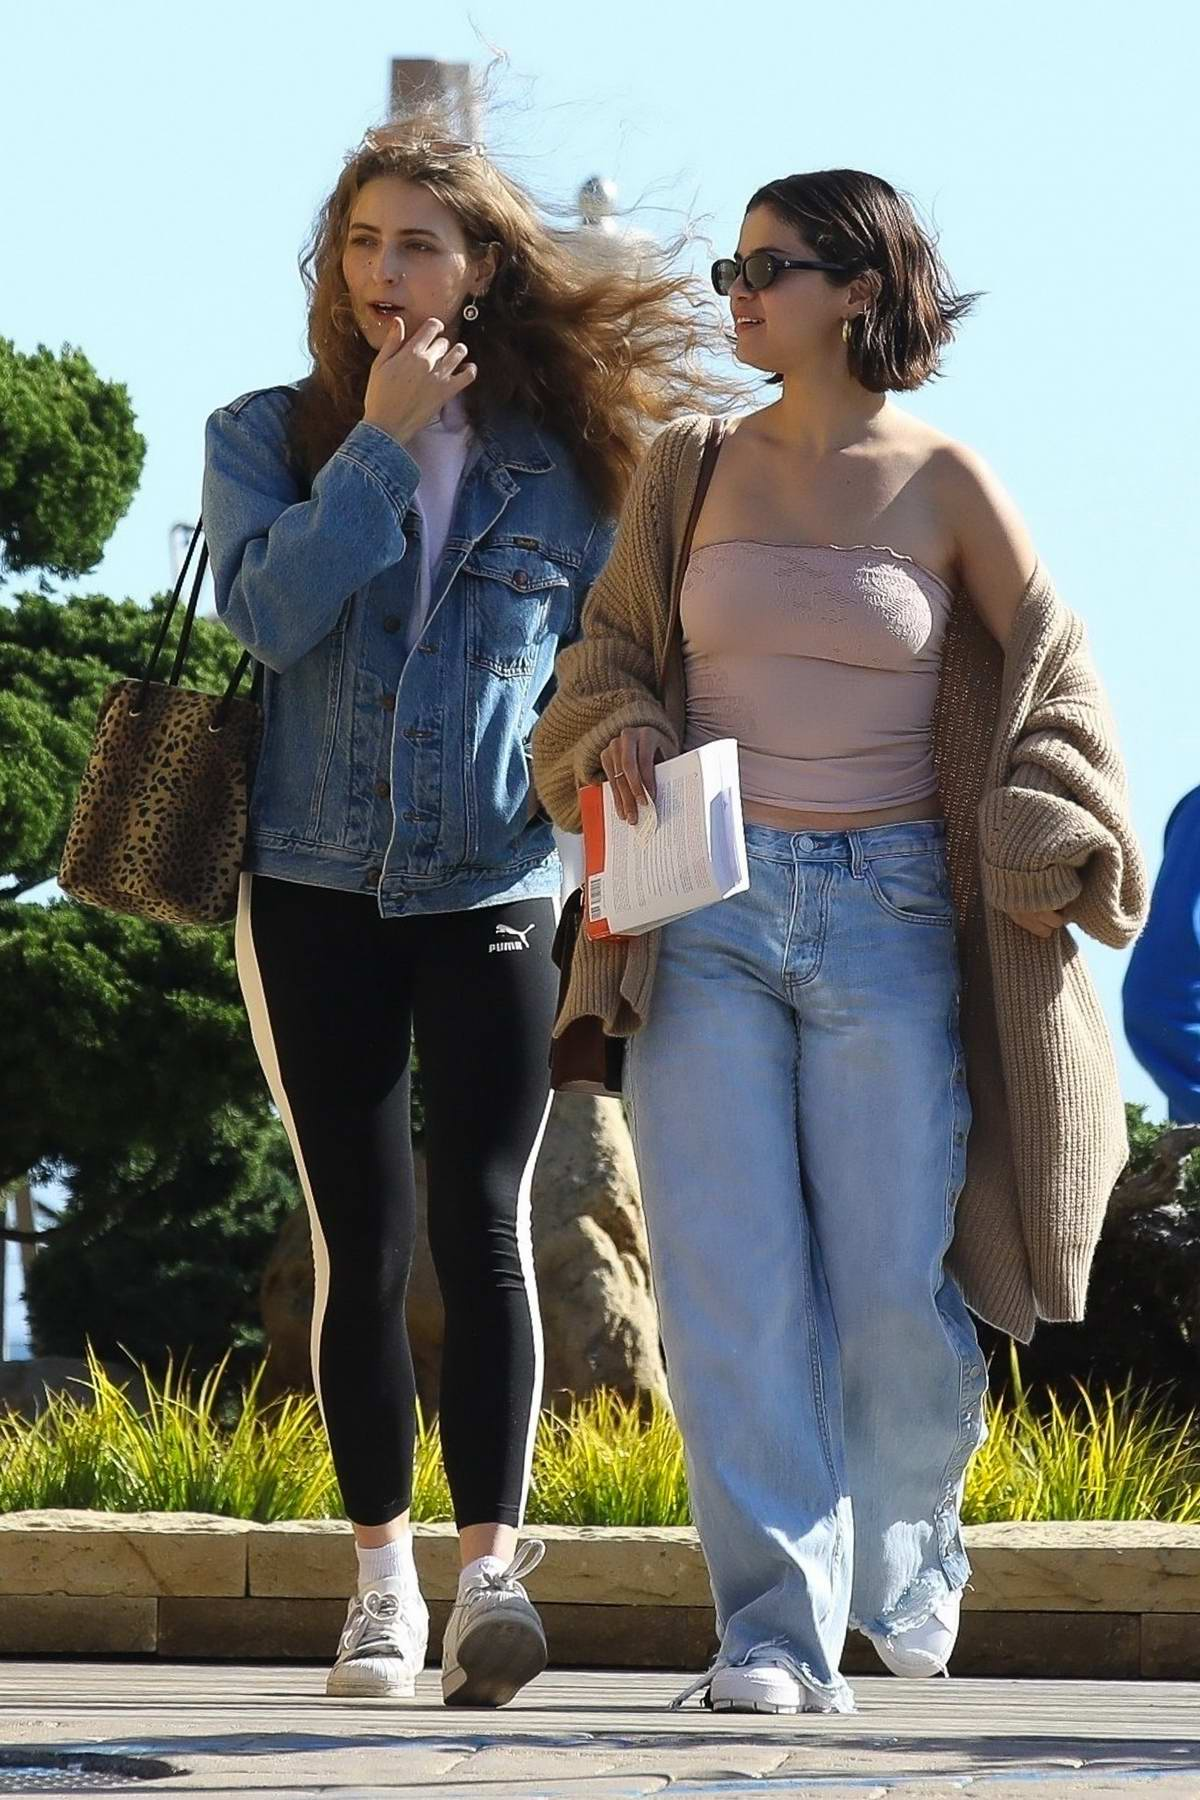 Selena Gomez steps out in a brown knit cardigan over a pink tube top and flared jeans as she grabs lunch with a friend at Nobu in Malibu, California